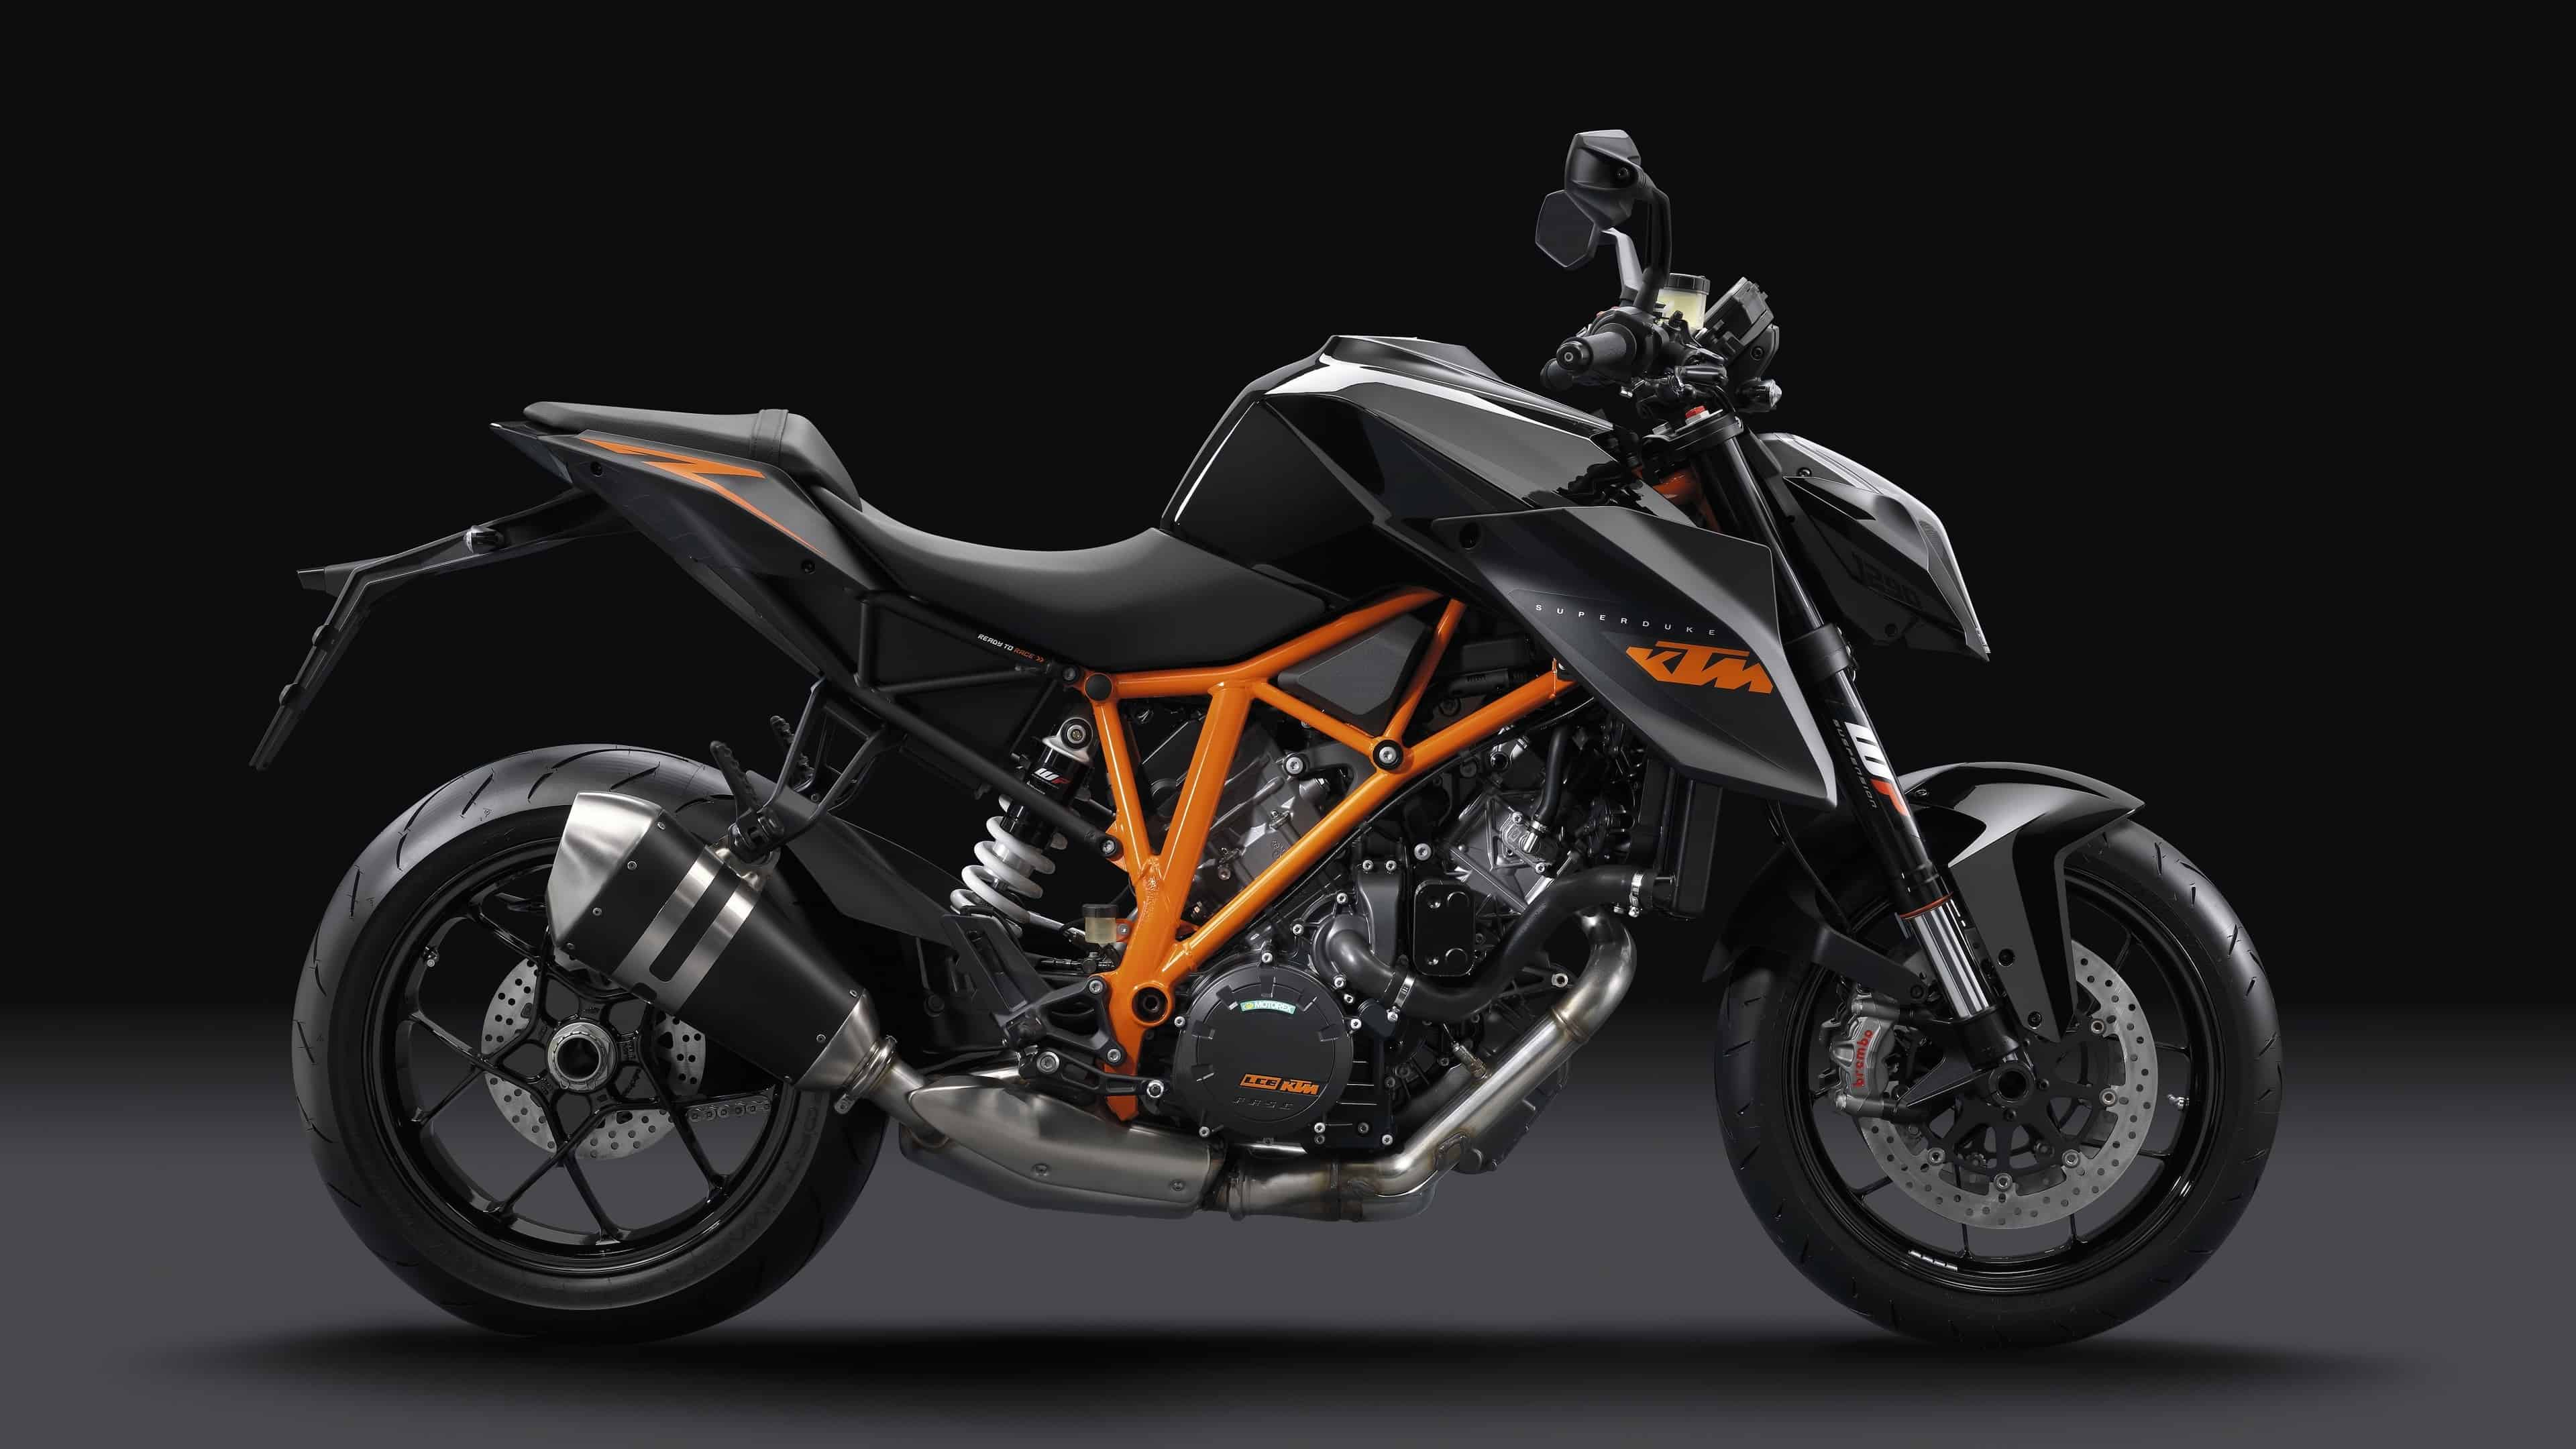 ktm 1290 super duke r uhd 4k wallpaper